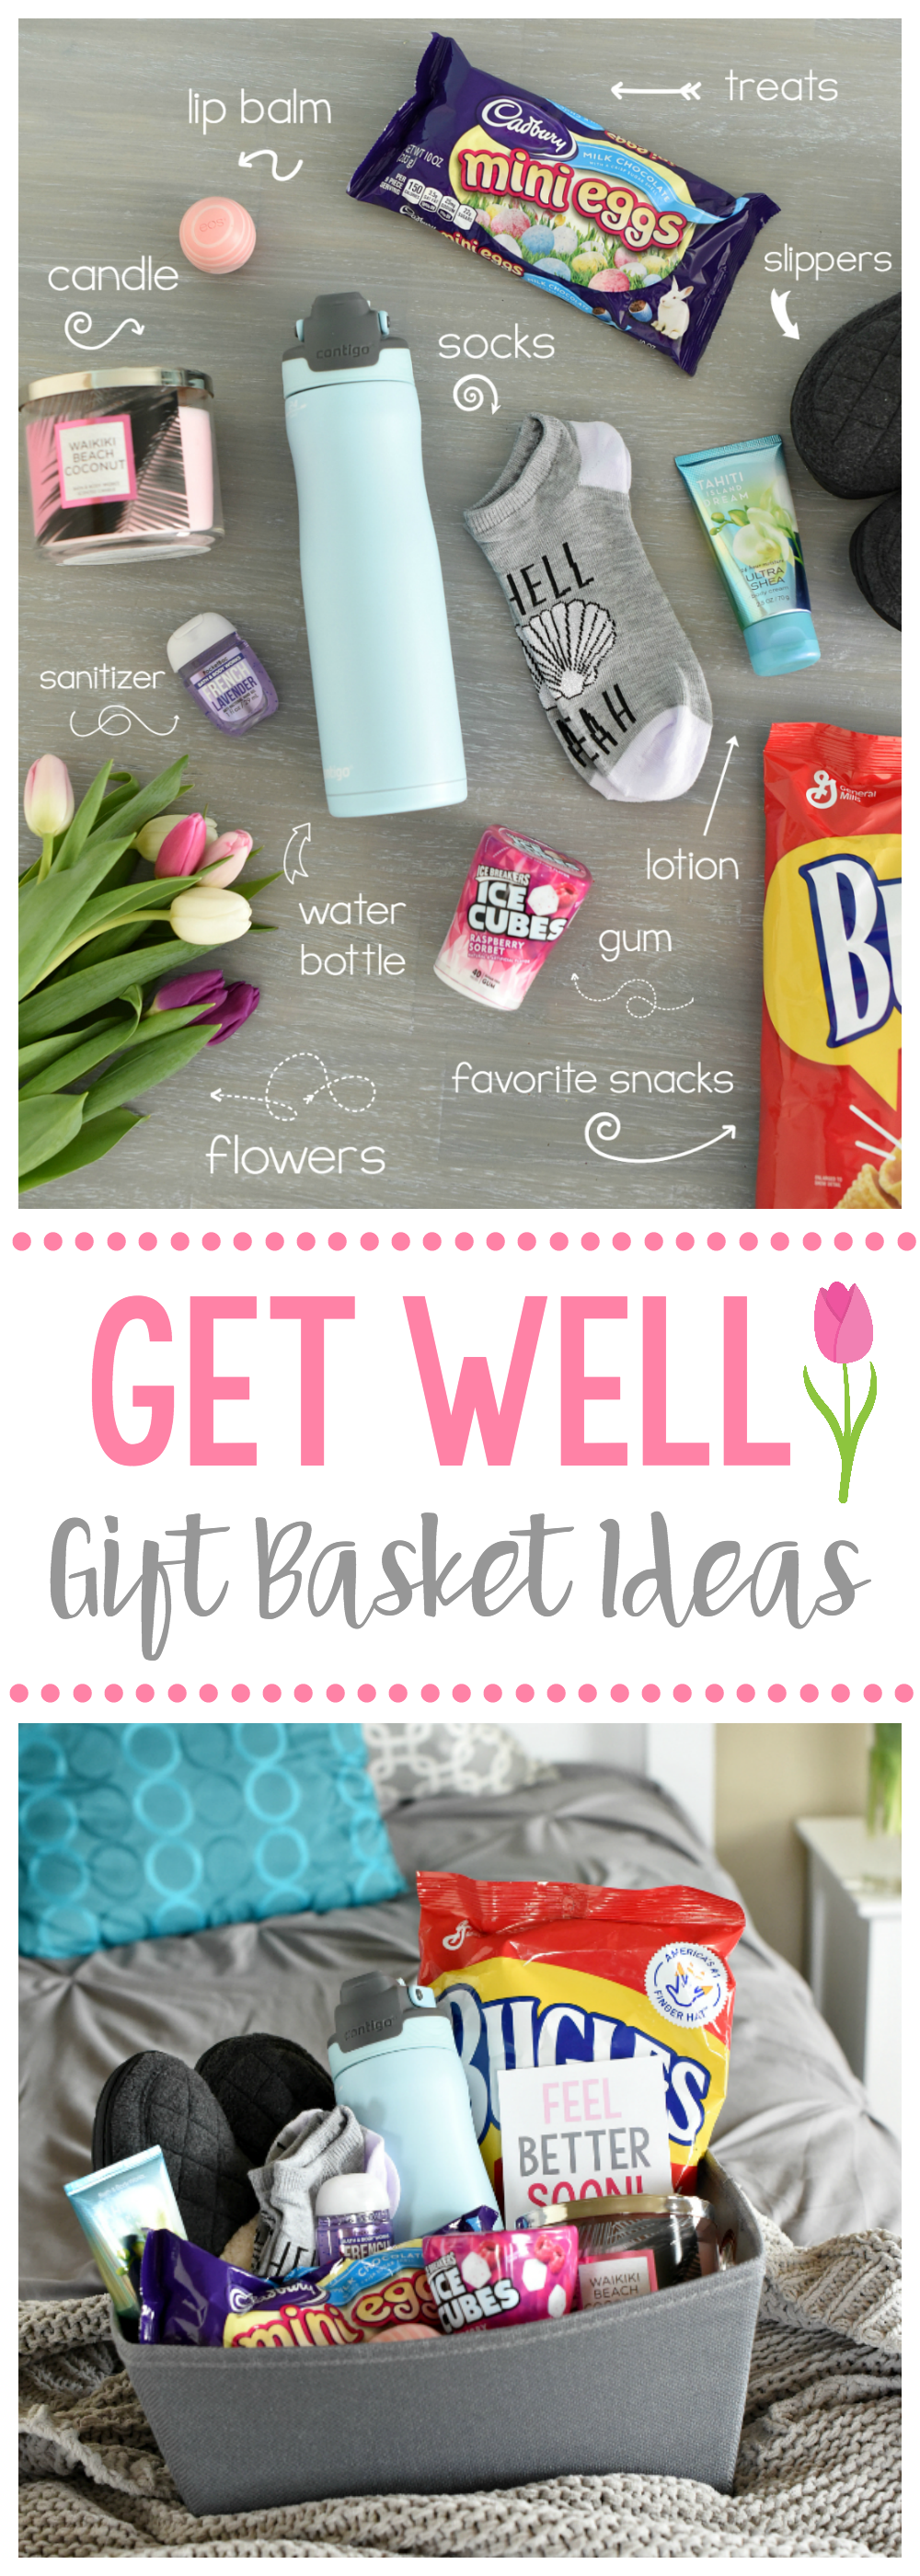 Get Well Soon Gift Ideas for Friends